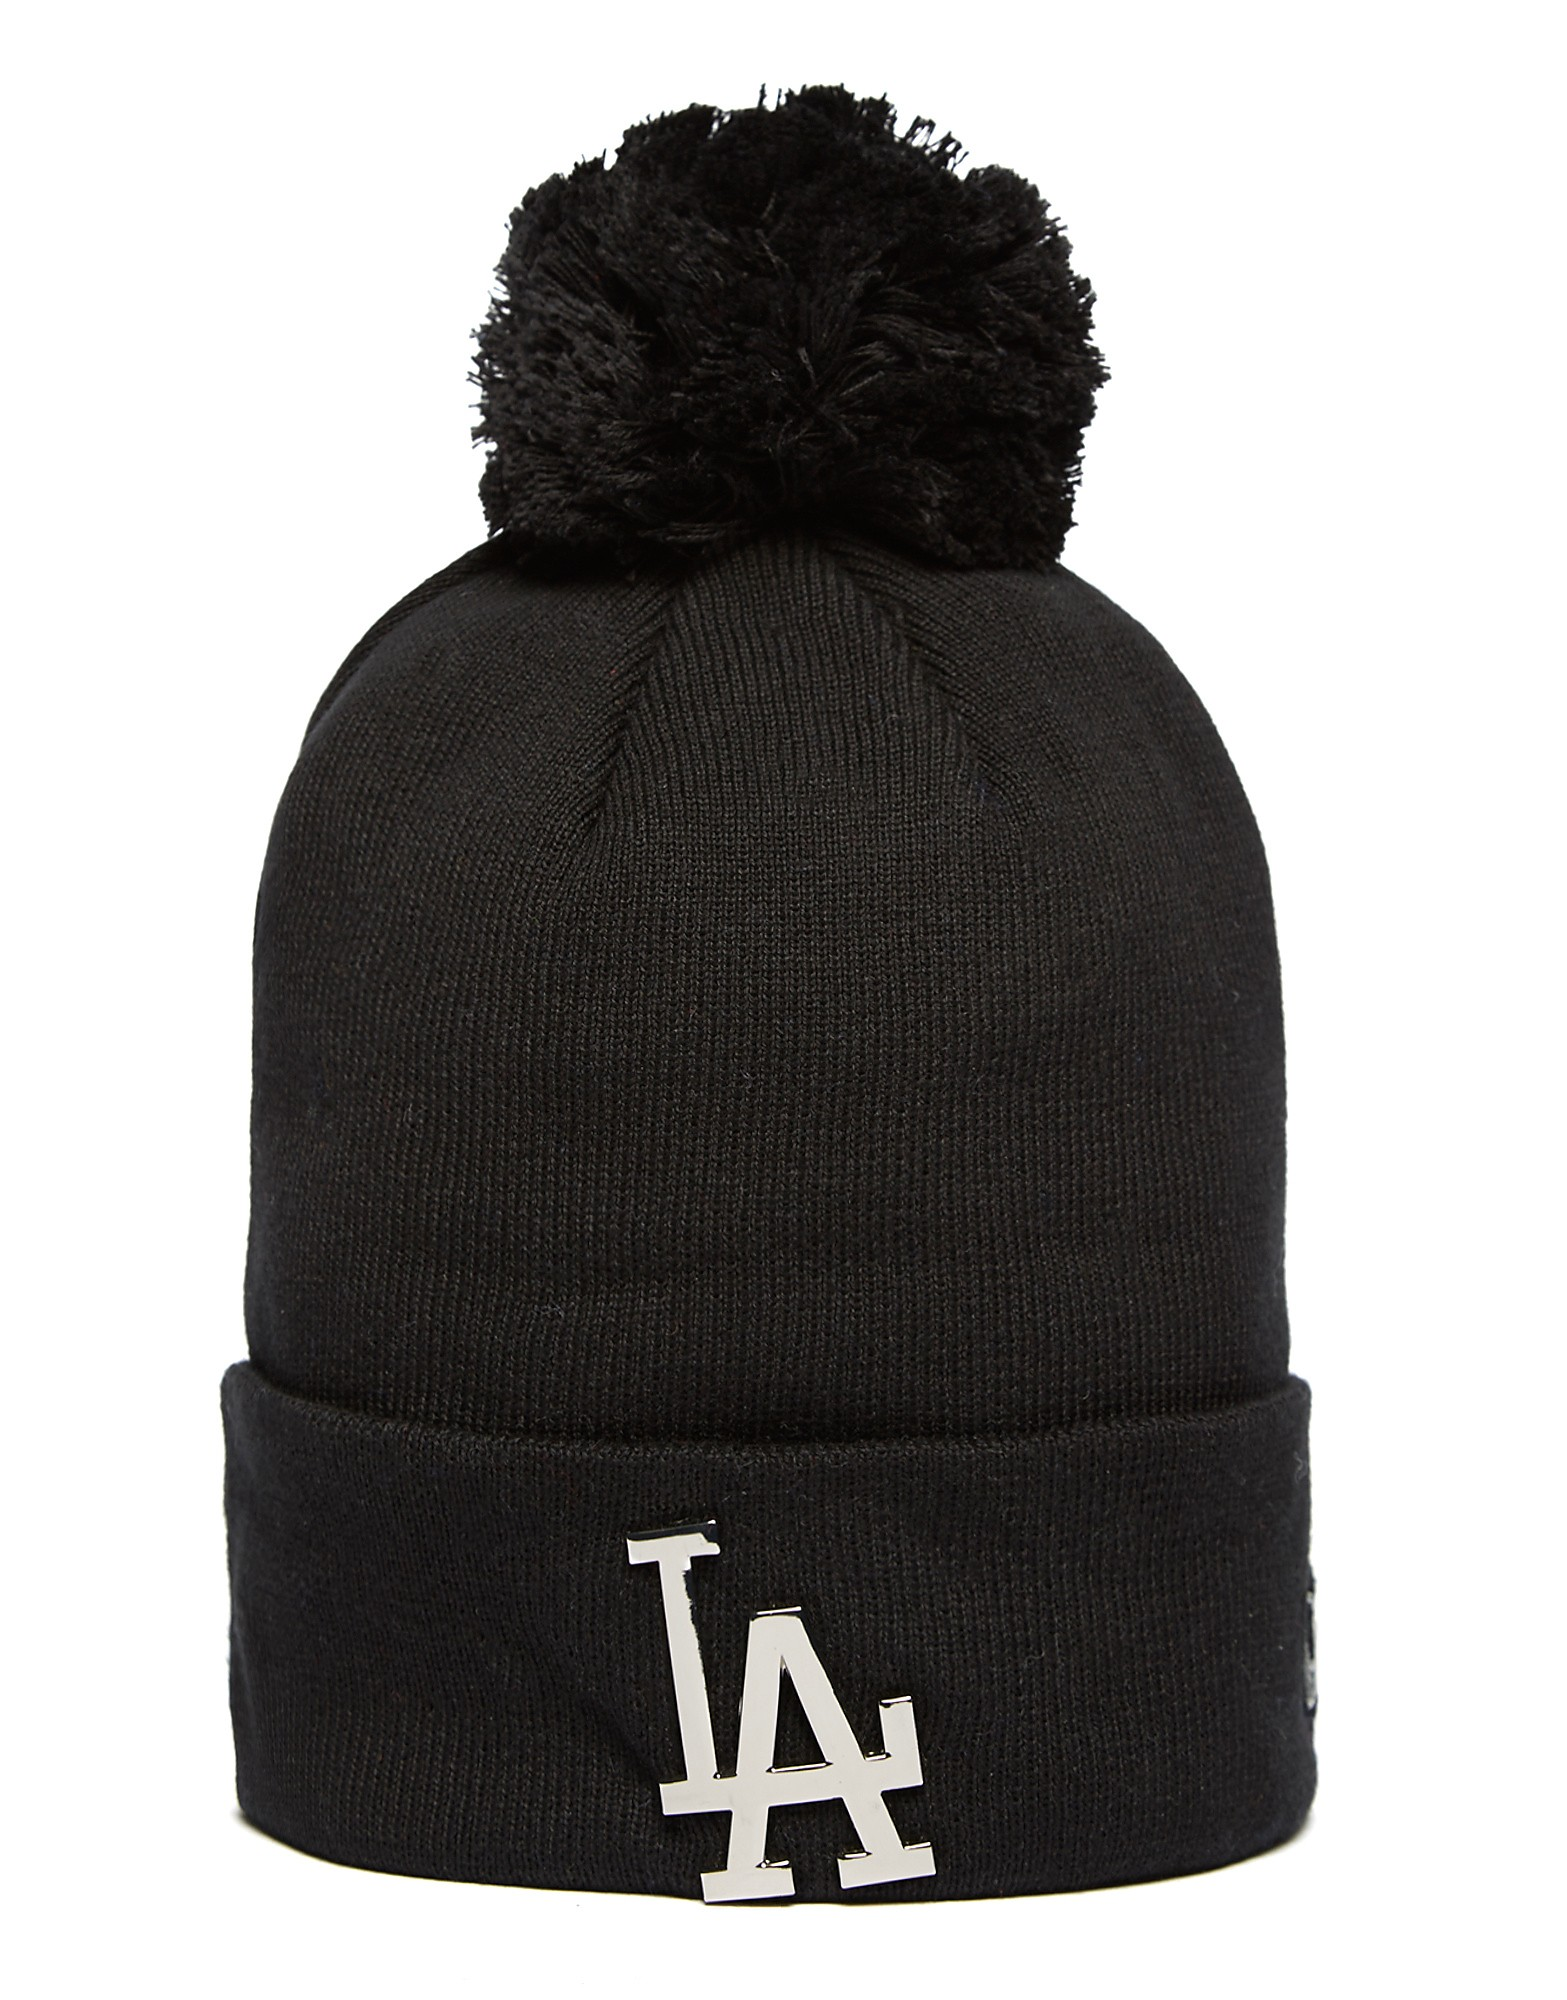 New Era MLB LA Dodgers Bobble Hat